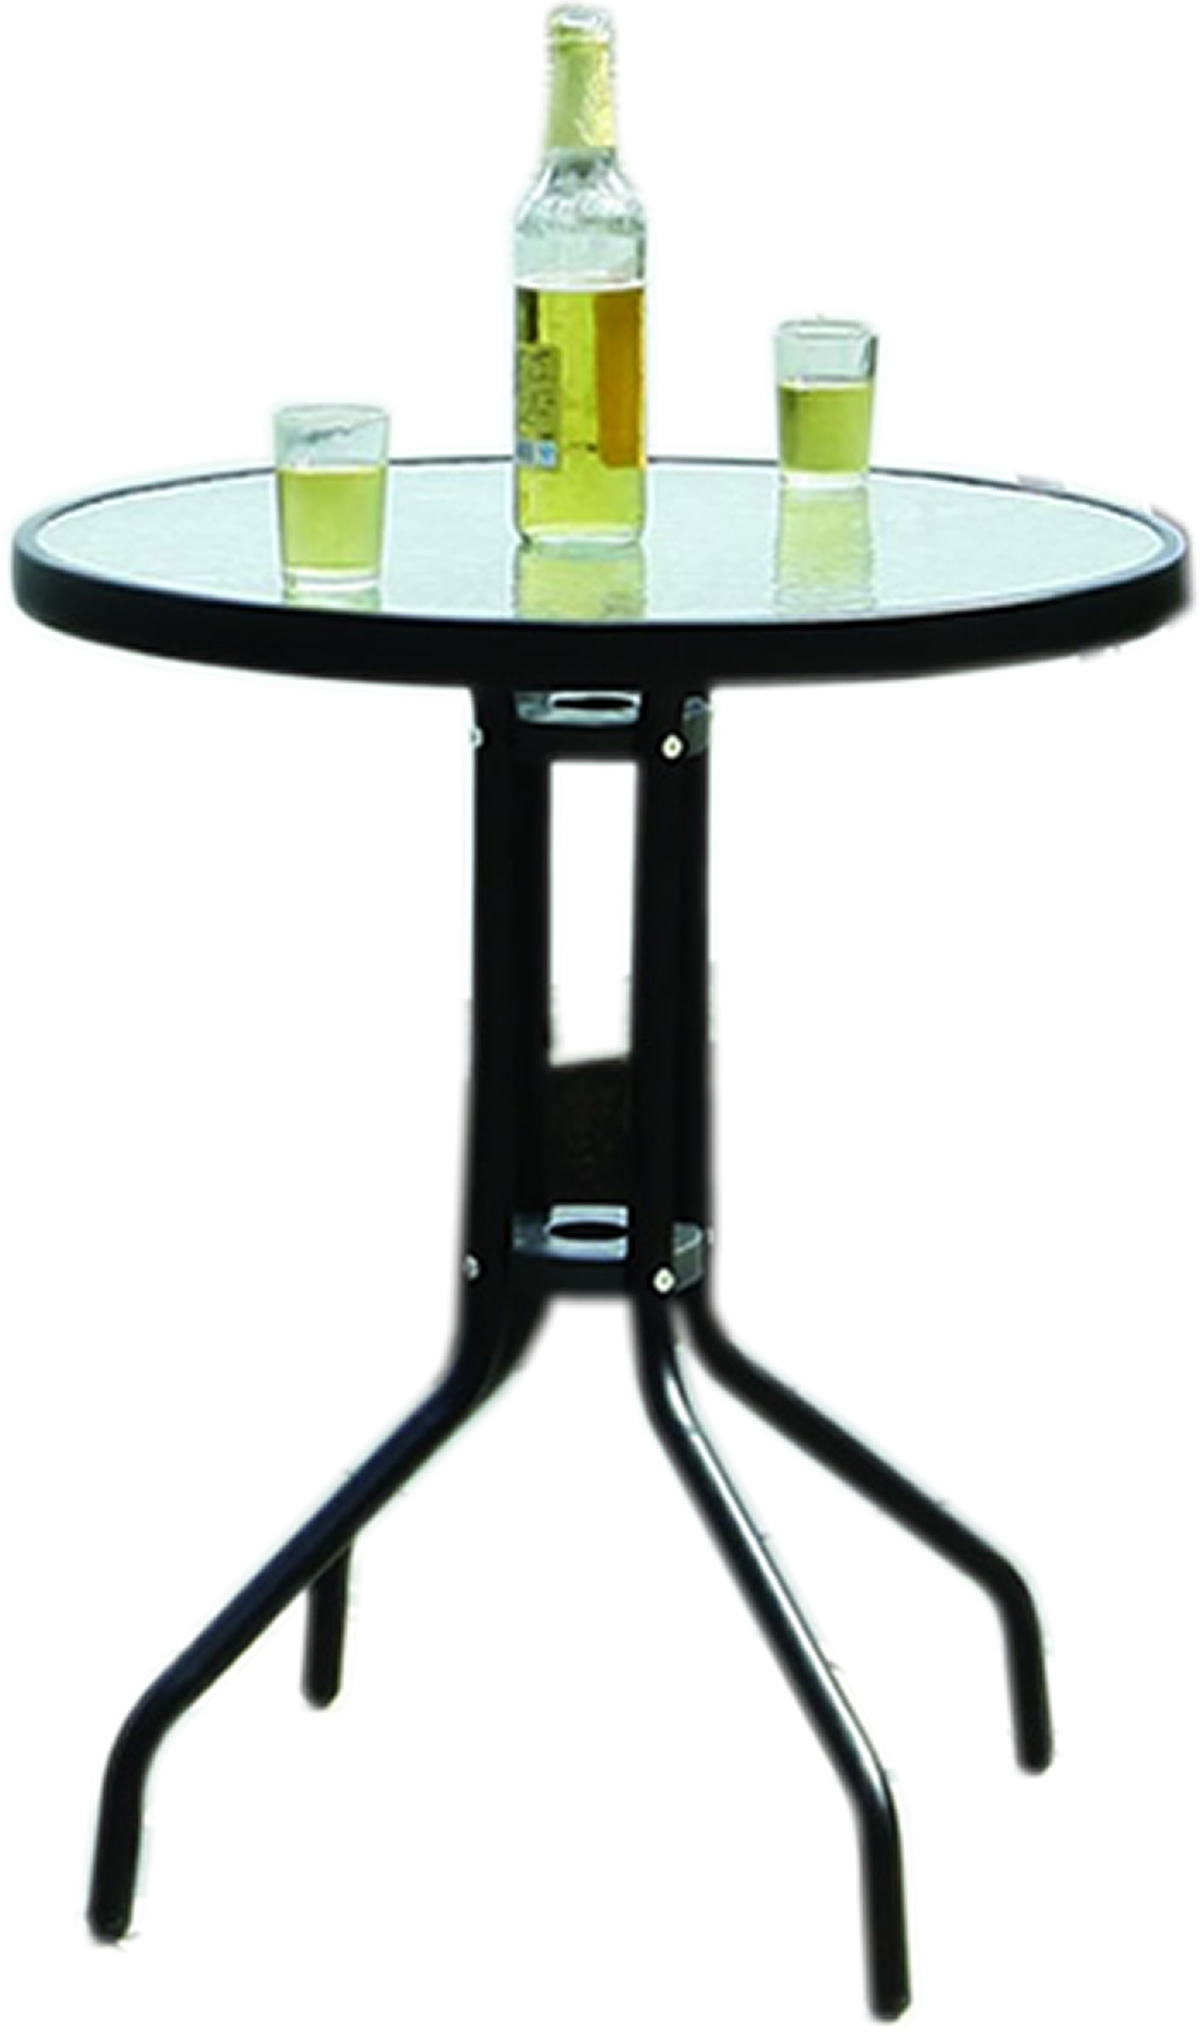 black metal frame bistro table with glass tabletop outdoor dining furntiure new. Black Bedroom Furniture Sets. Home Design Ideas